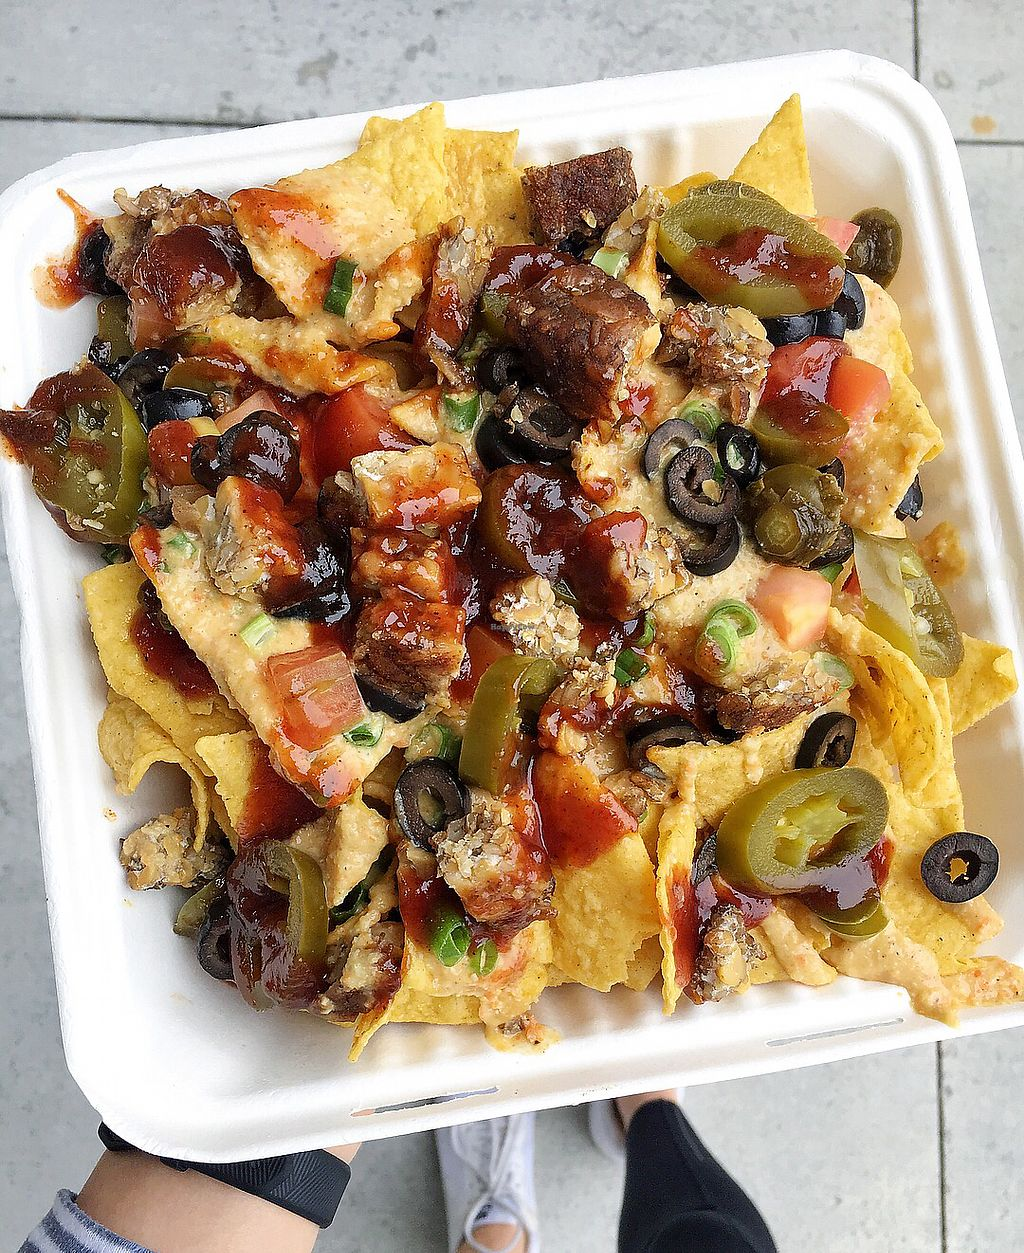 """Photo of BBQ4Life  by <a href=""""/members/profile/remyelysee"""">remyelysee</a> <br/>Nachos with added tempeh!  <br/> March 17, 2018  - <a href='/contact/abuse/image/53174/371888'>Report</a>"""